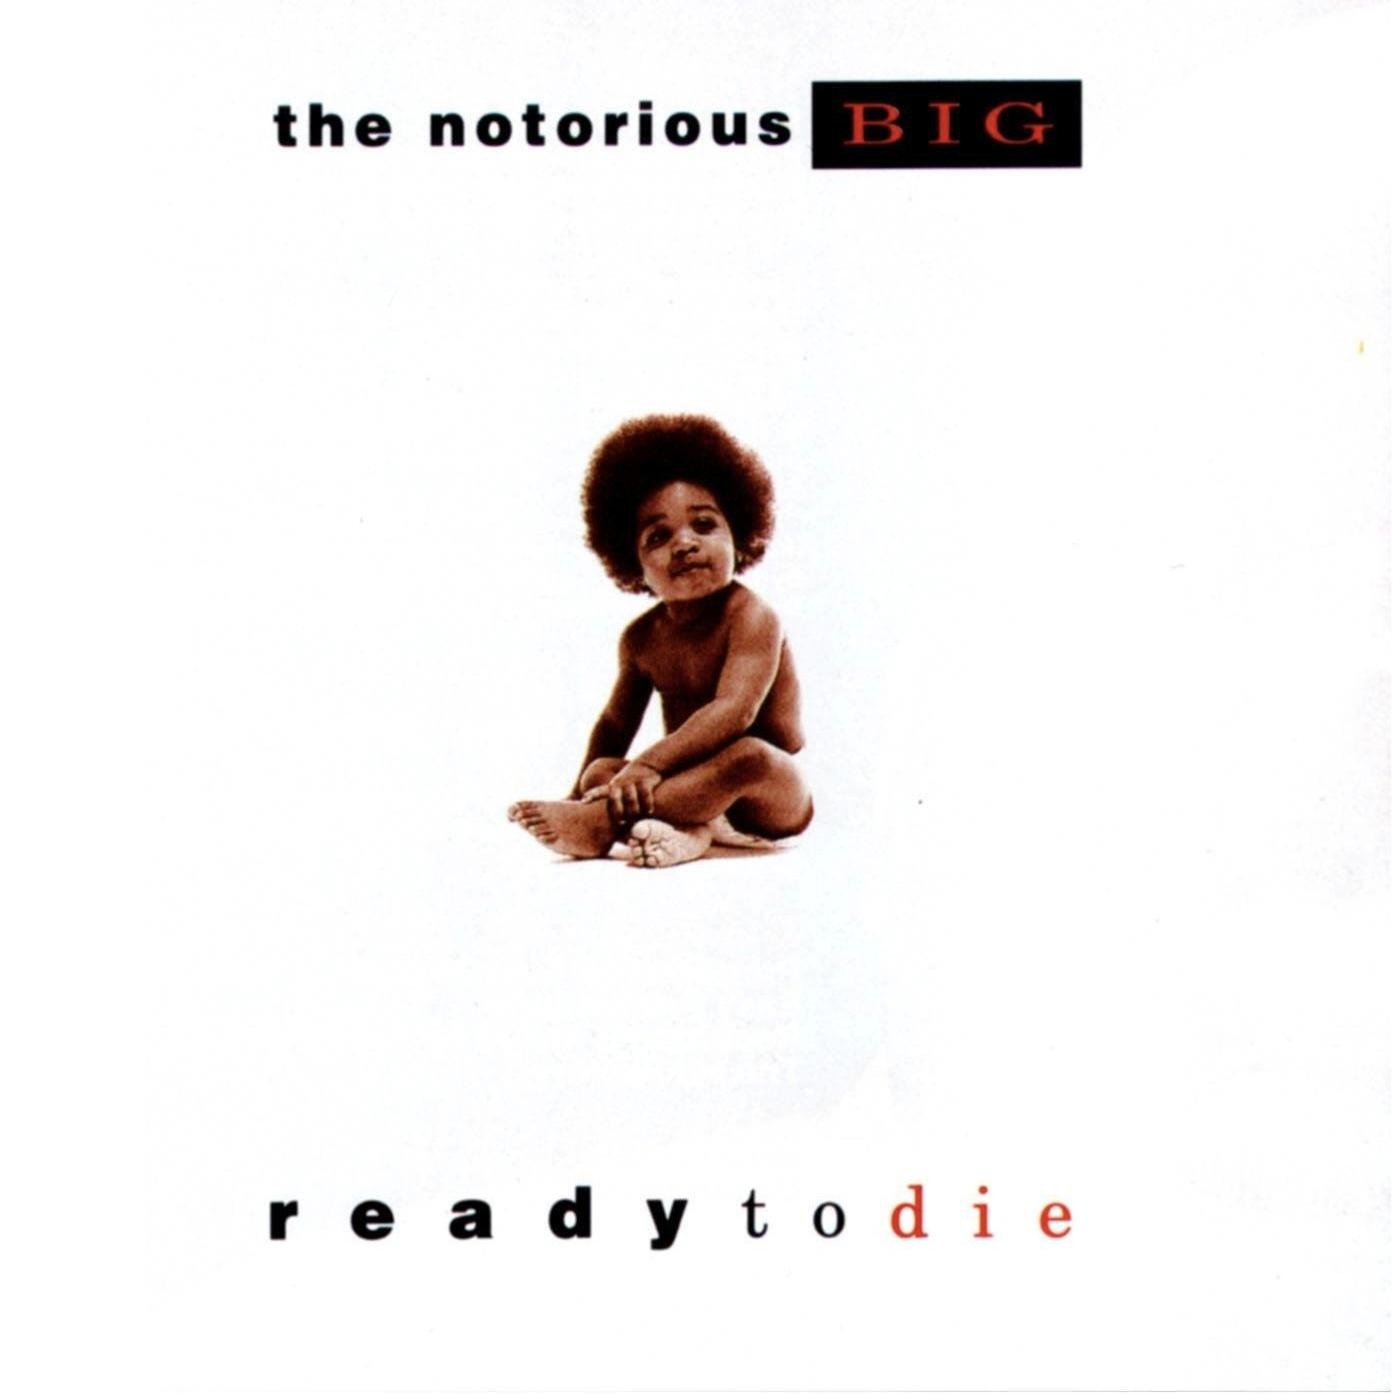 S03E02 - Notorious B.I.G. - Ready To Die